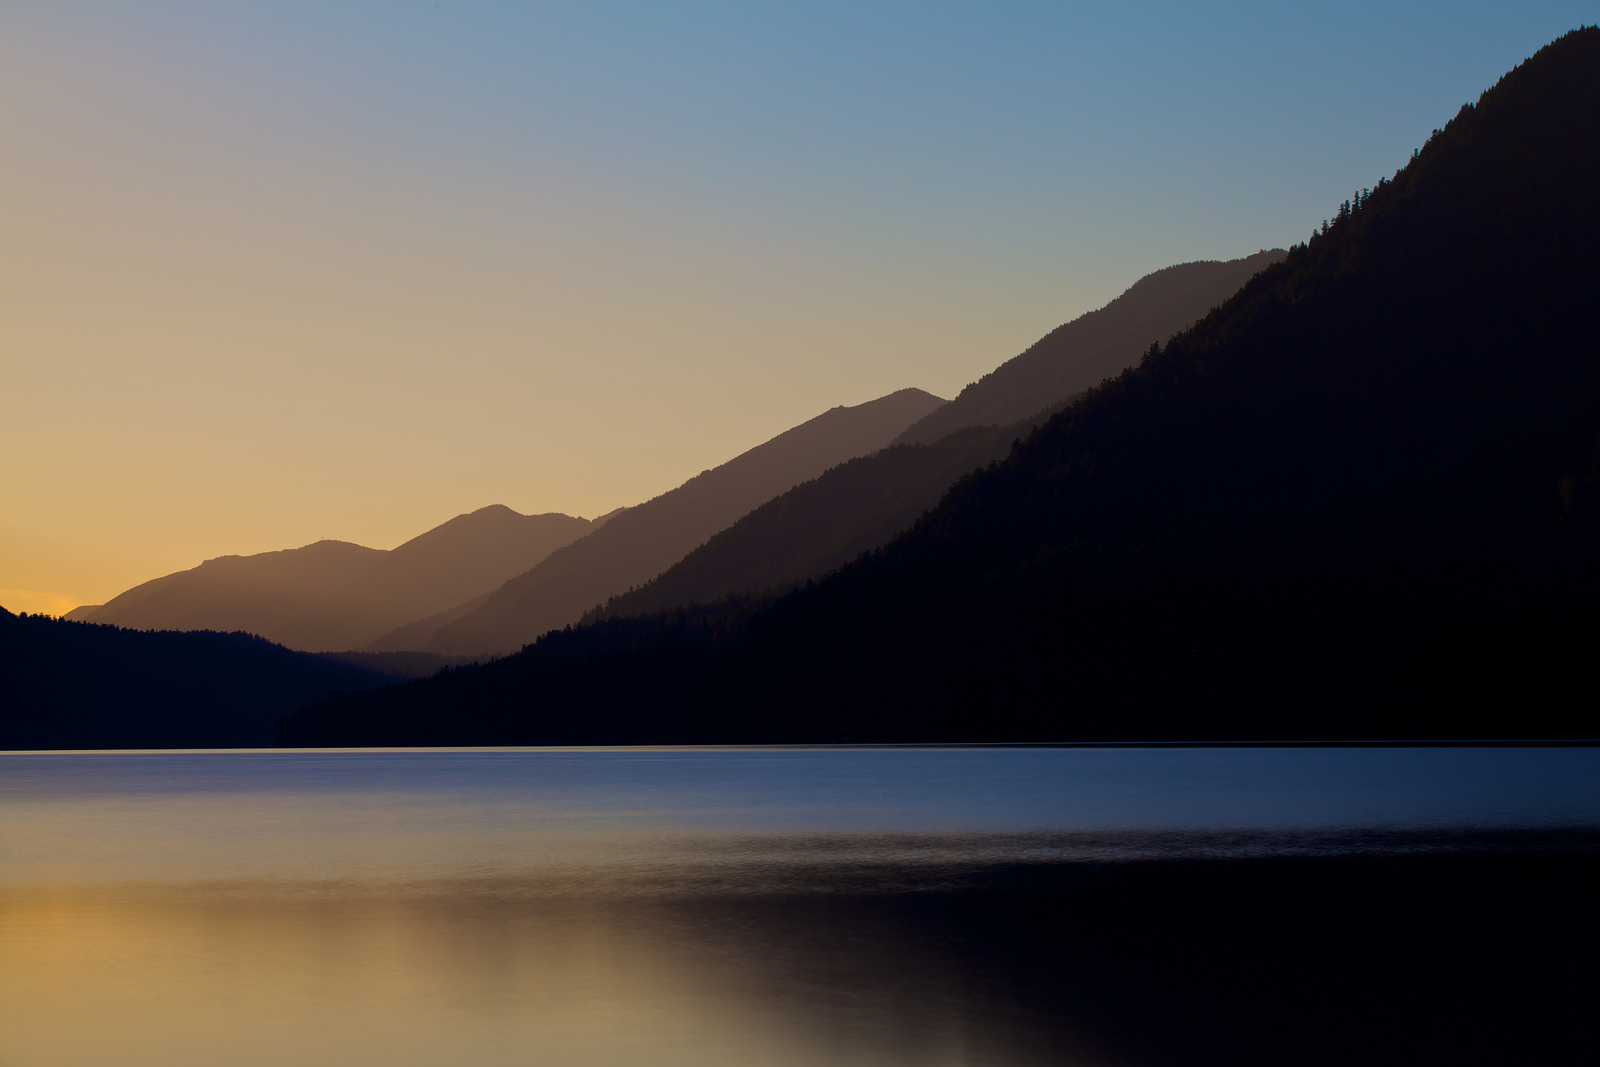 Lake Crescent Layers